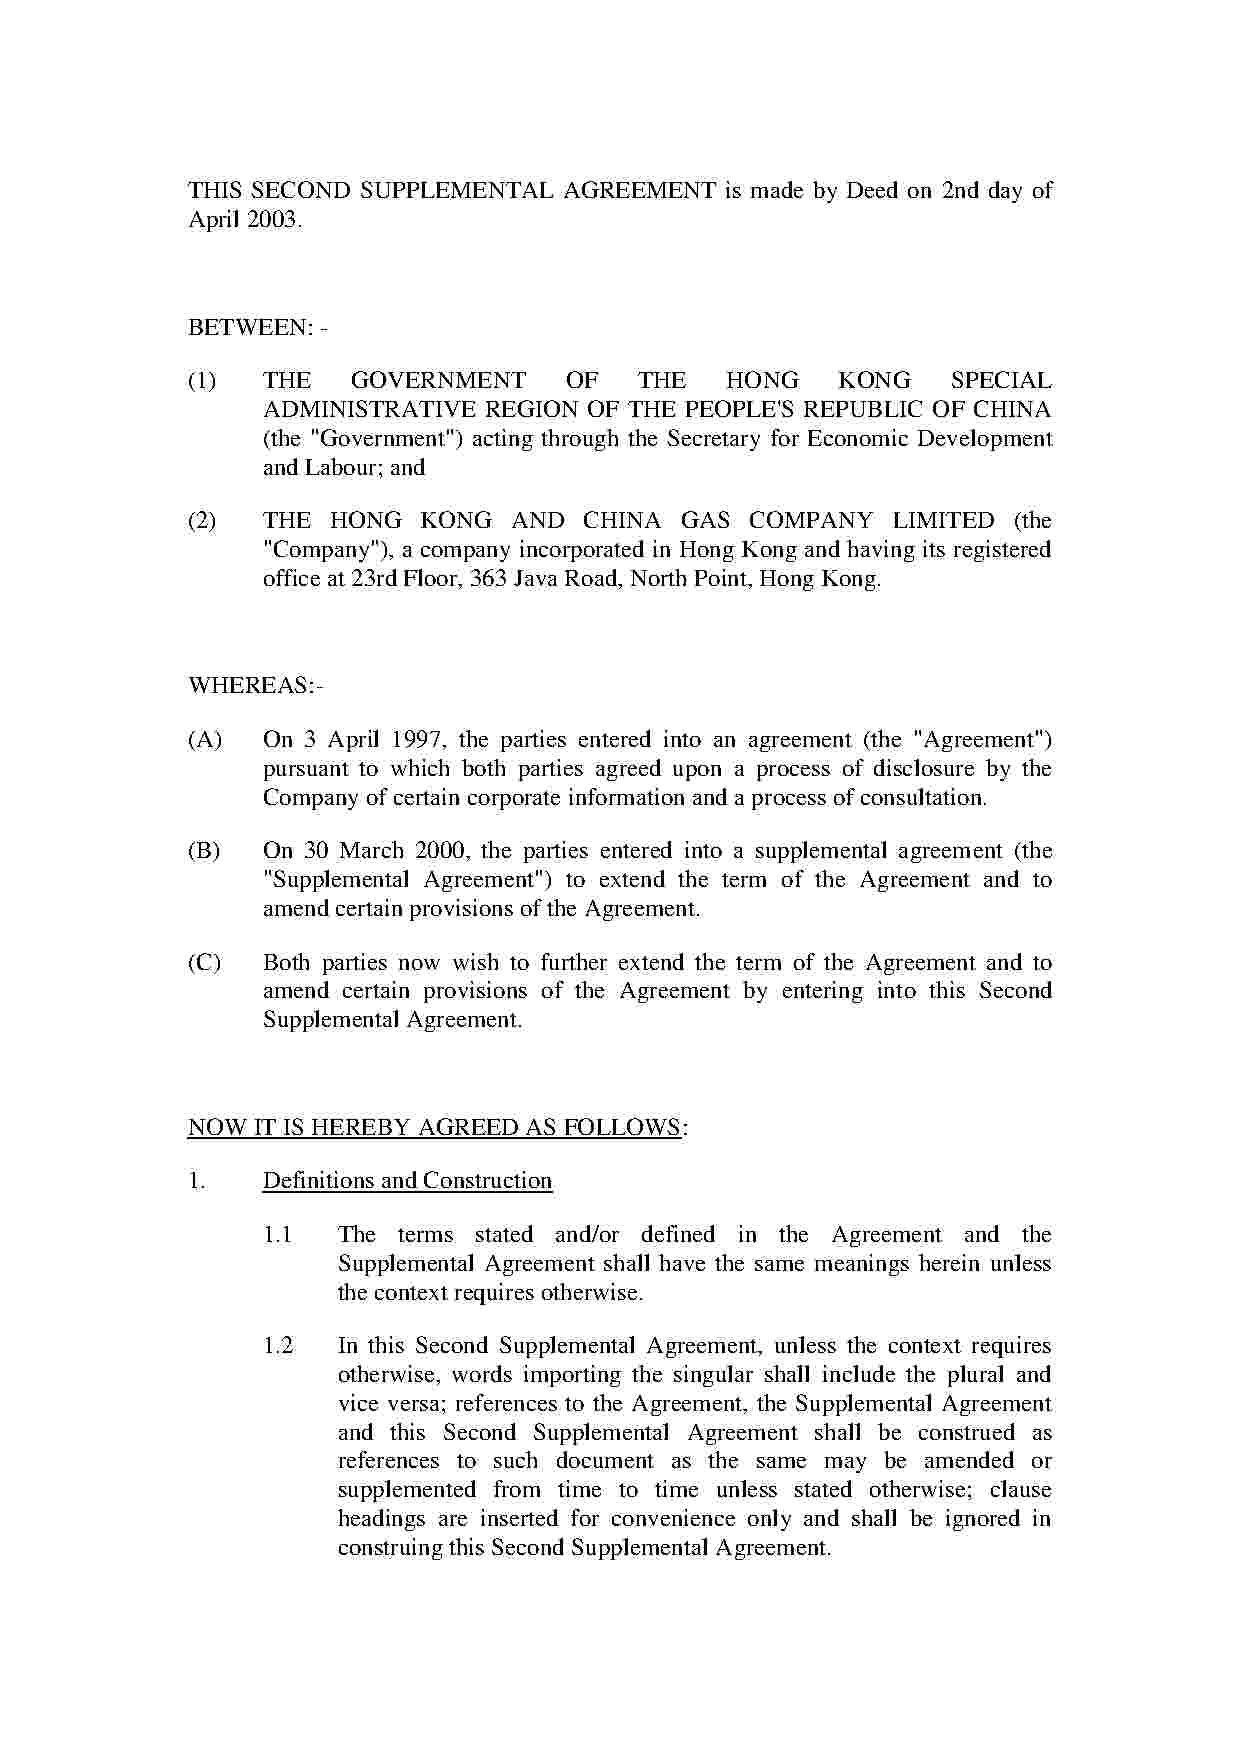 Download Contract Extension Agreement Style  Template For Free At In Supplemental Agreement Template